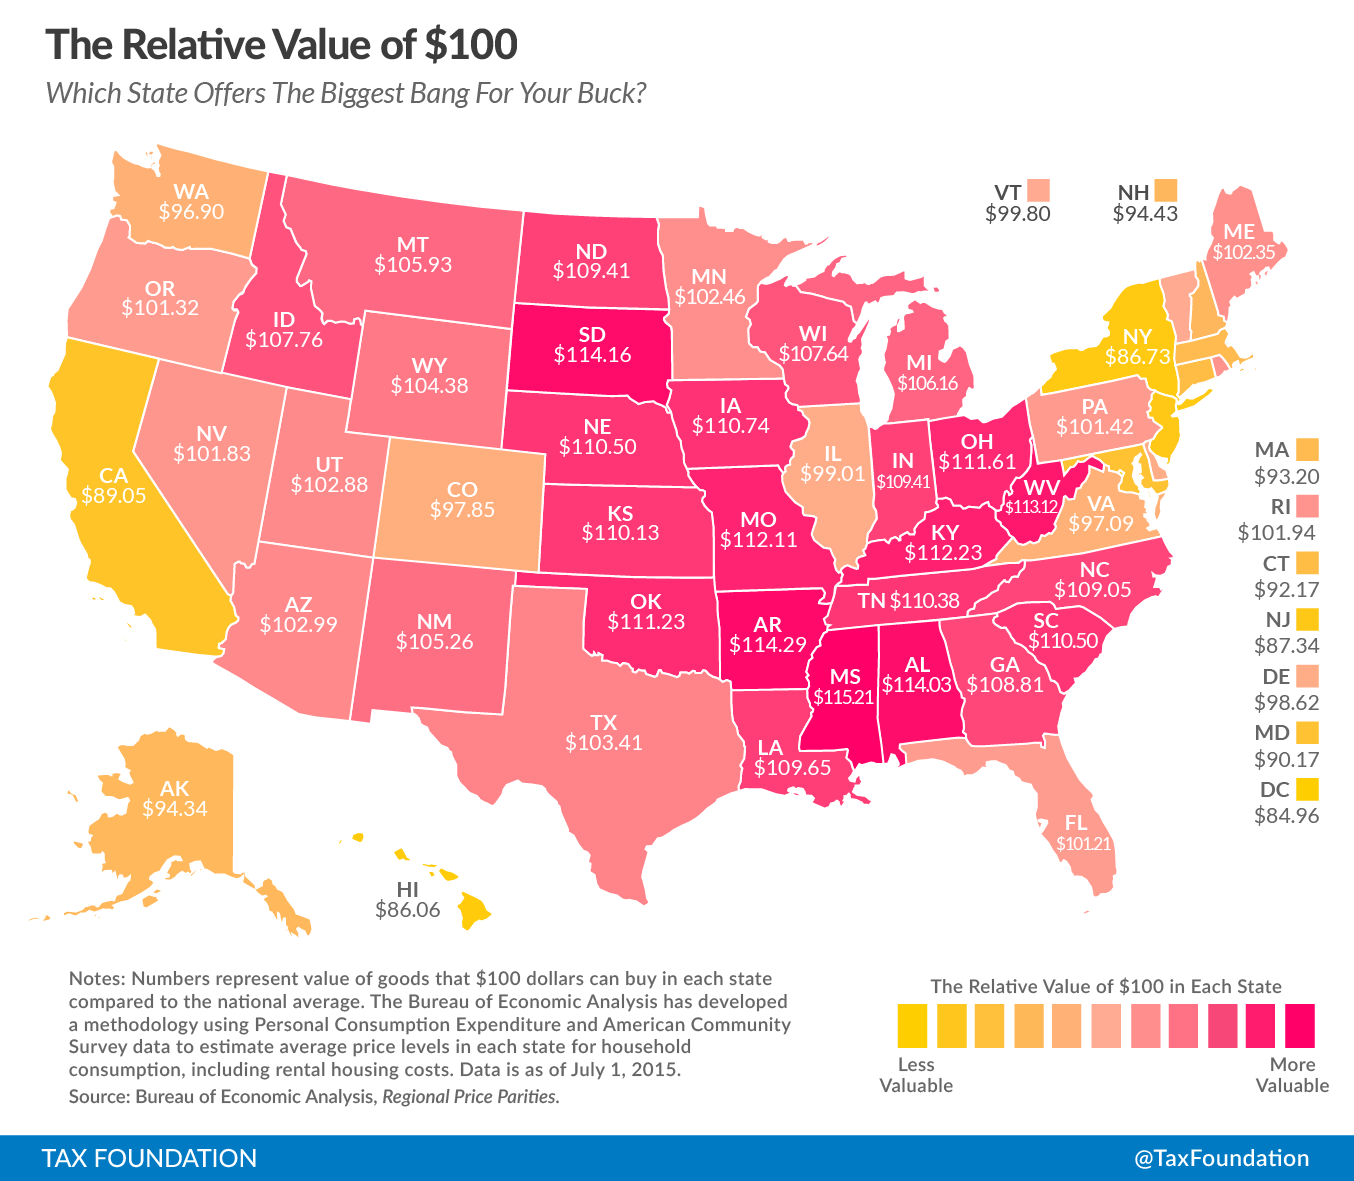 The Fifty States Map.Misunderstood Finance Relative Value Of 100 In The Fifty States Map